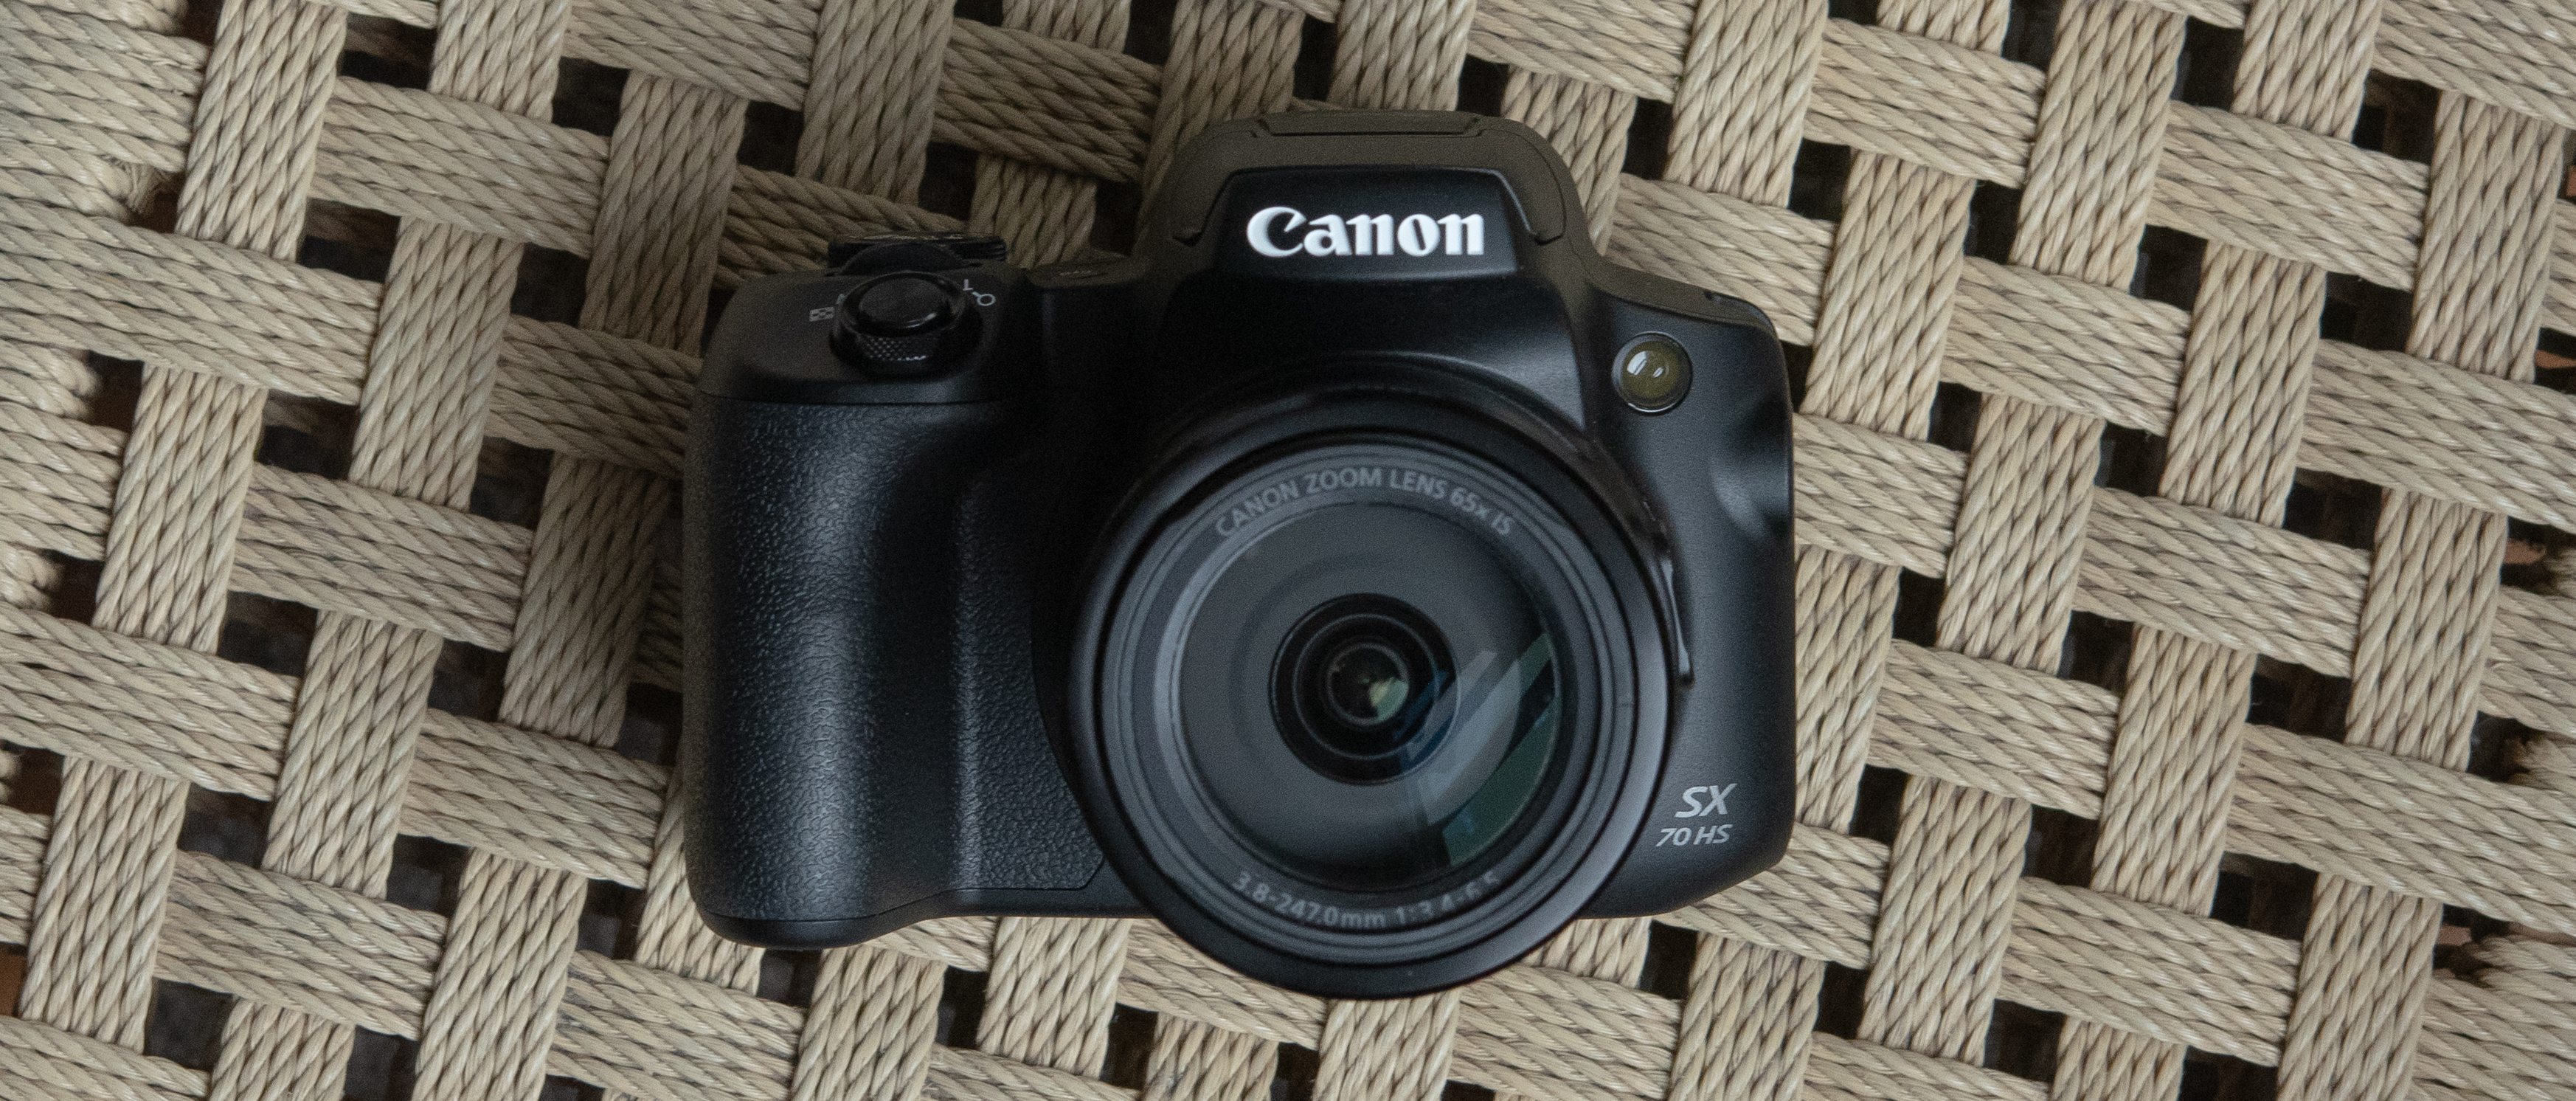 Canon PowerShot SX70 HS review | TechRadar